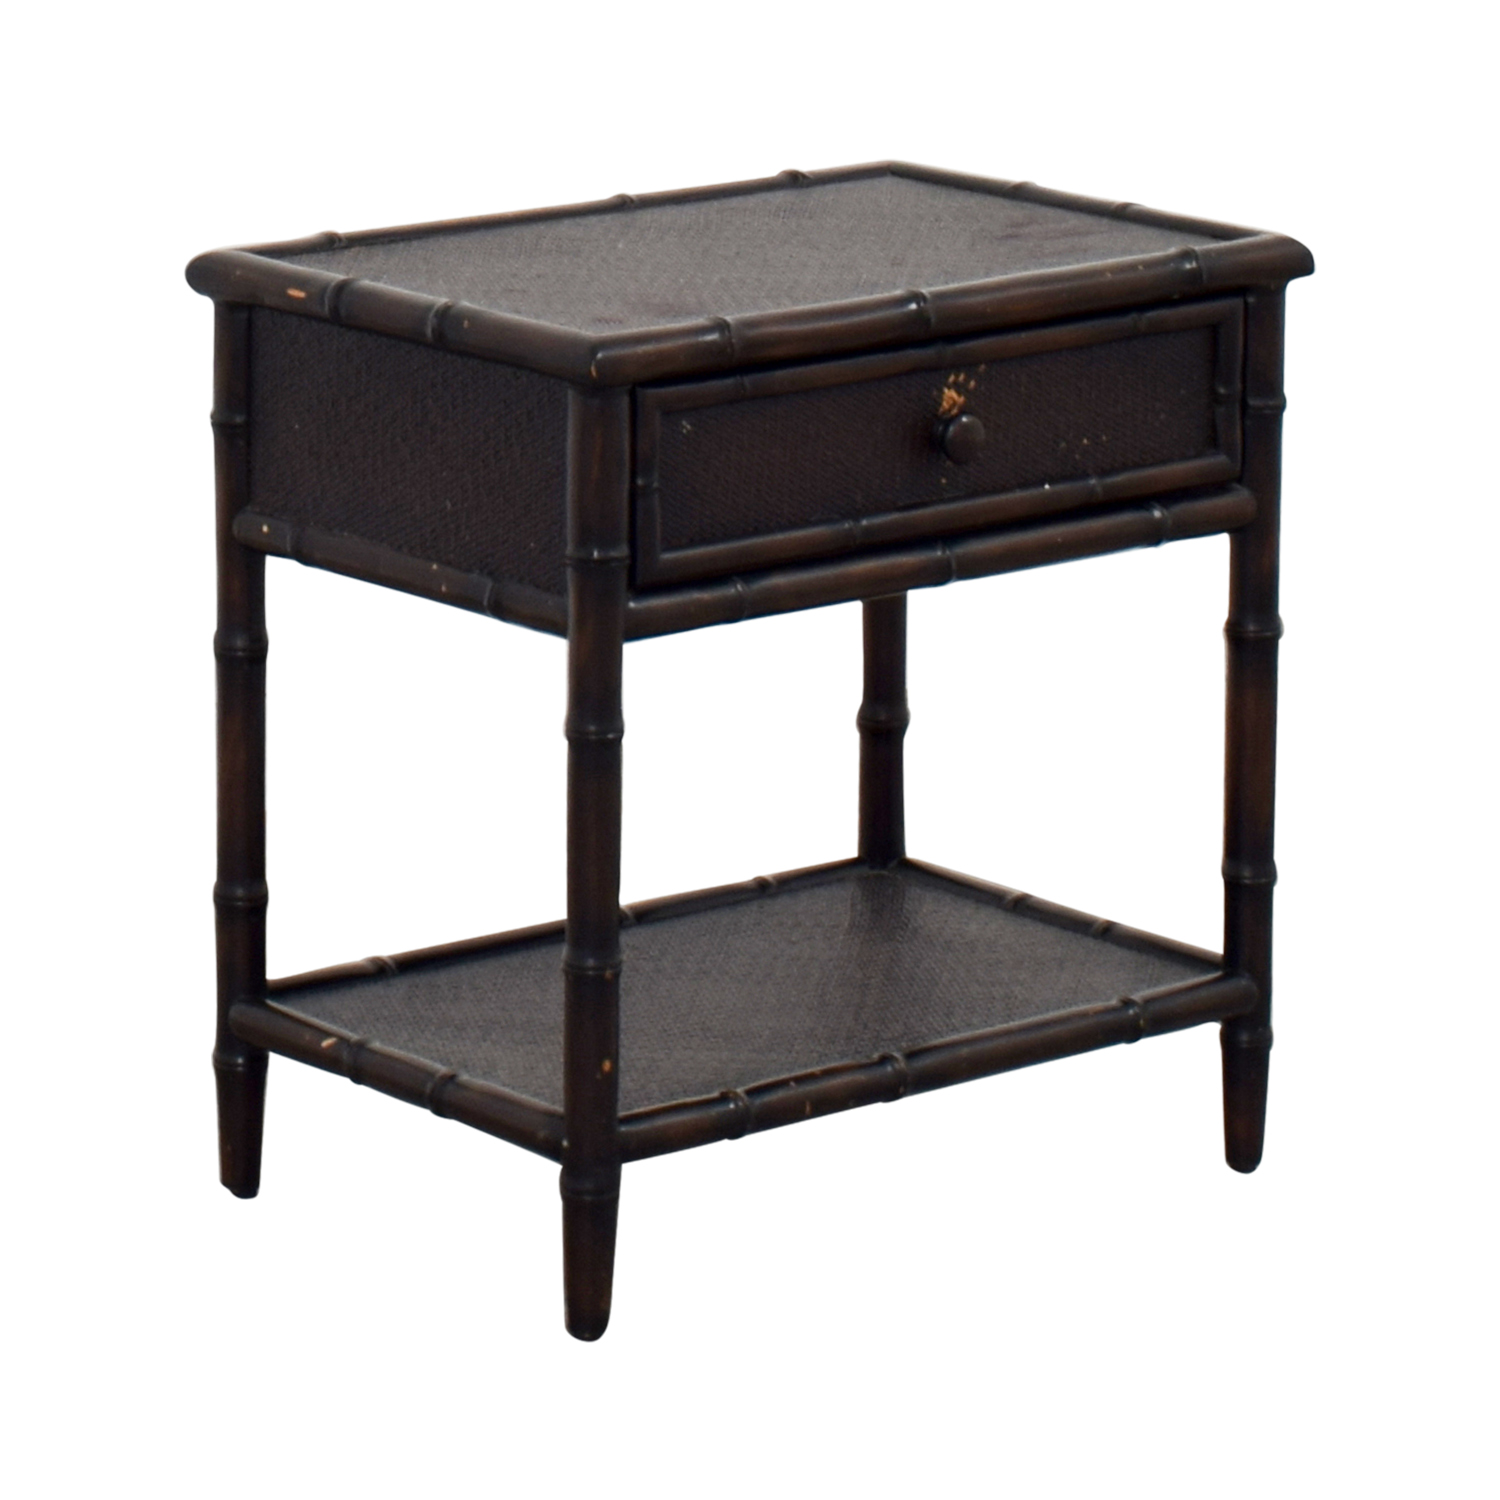 Crate & Barrel Crate & Barrel Queen Solid Wood Malabar Side Table on sale